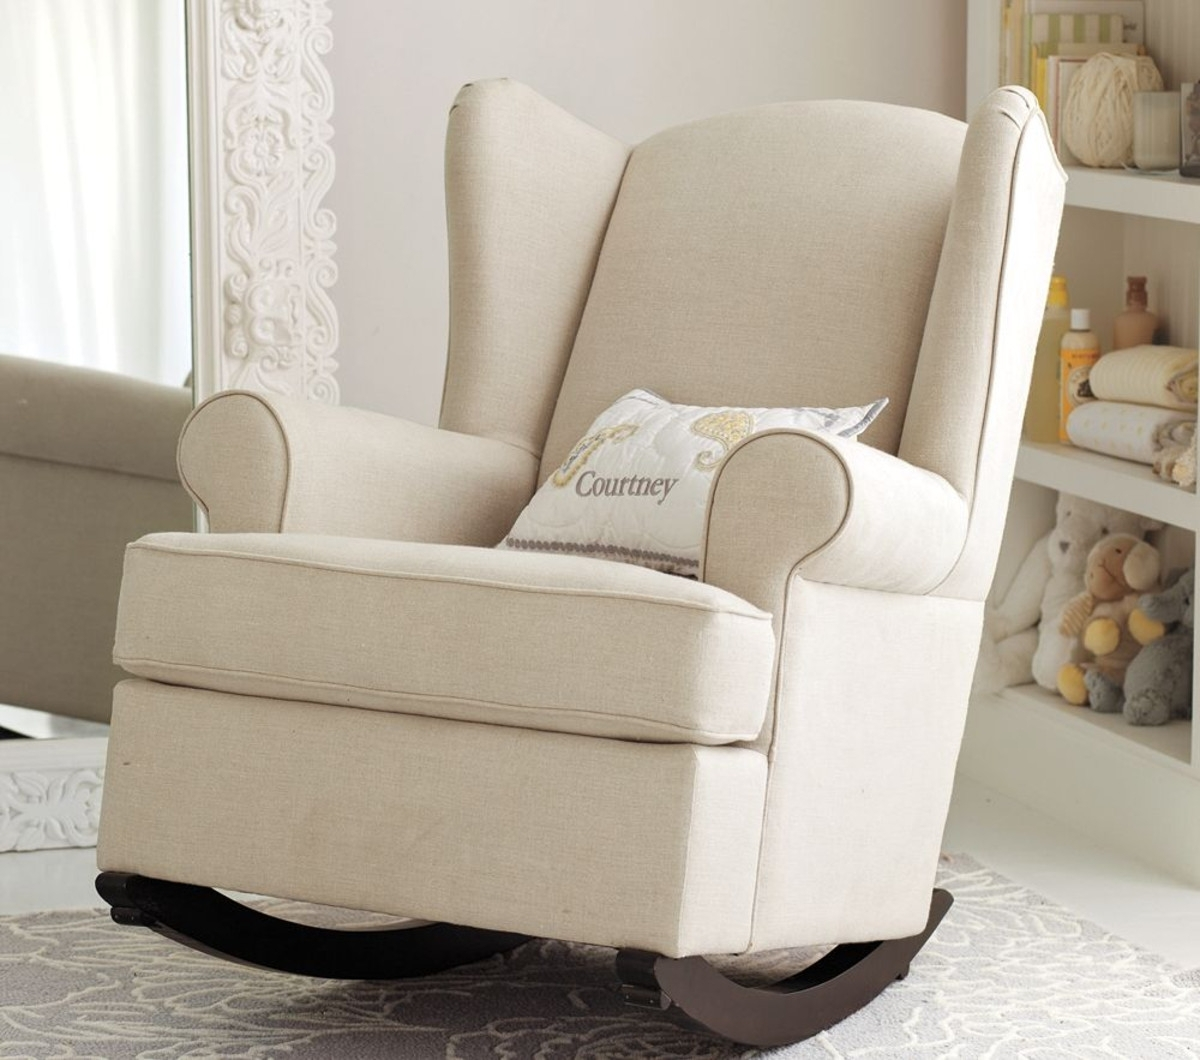 Inspiration about Rocking Chair For Nursery Pregnancy F20X On Most Luxury Small Space In Rocking Chairs For Small Spaces (#5 of 15)